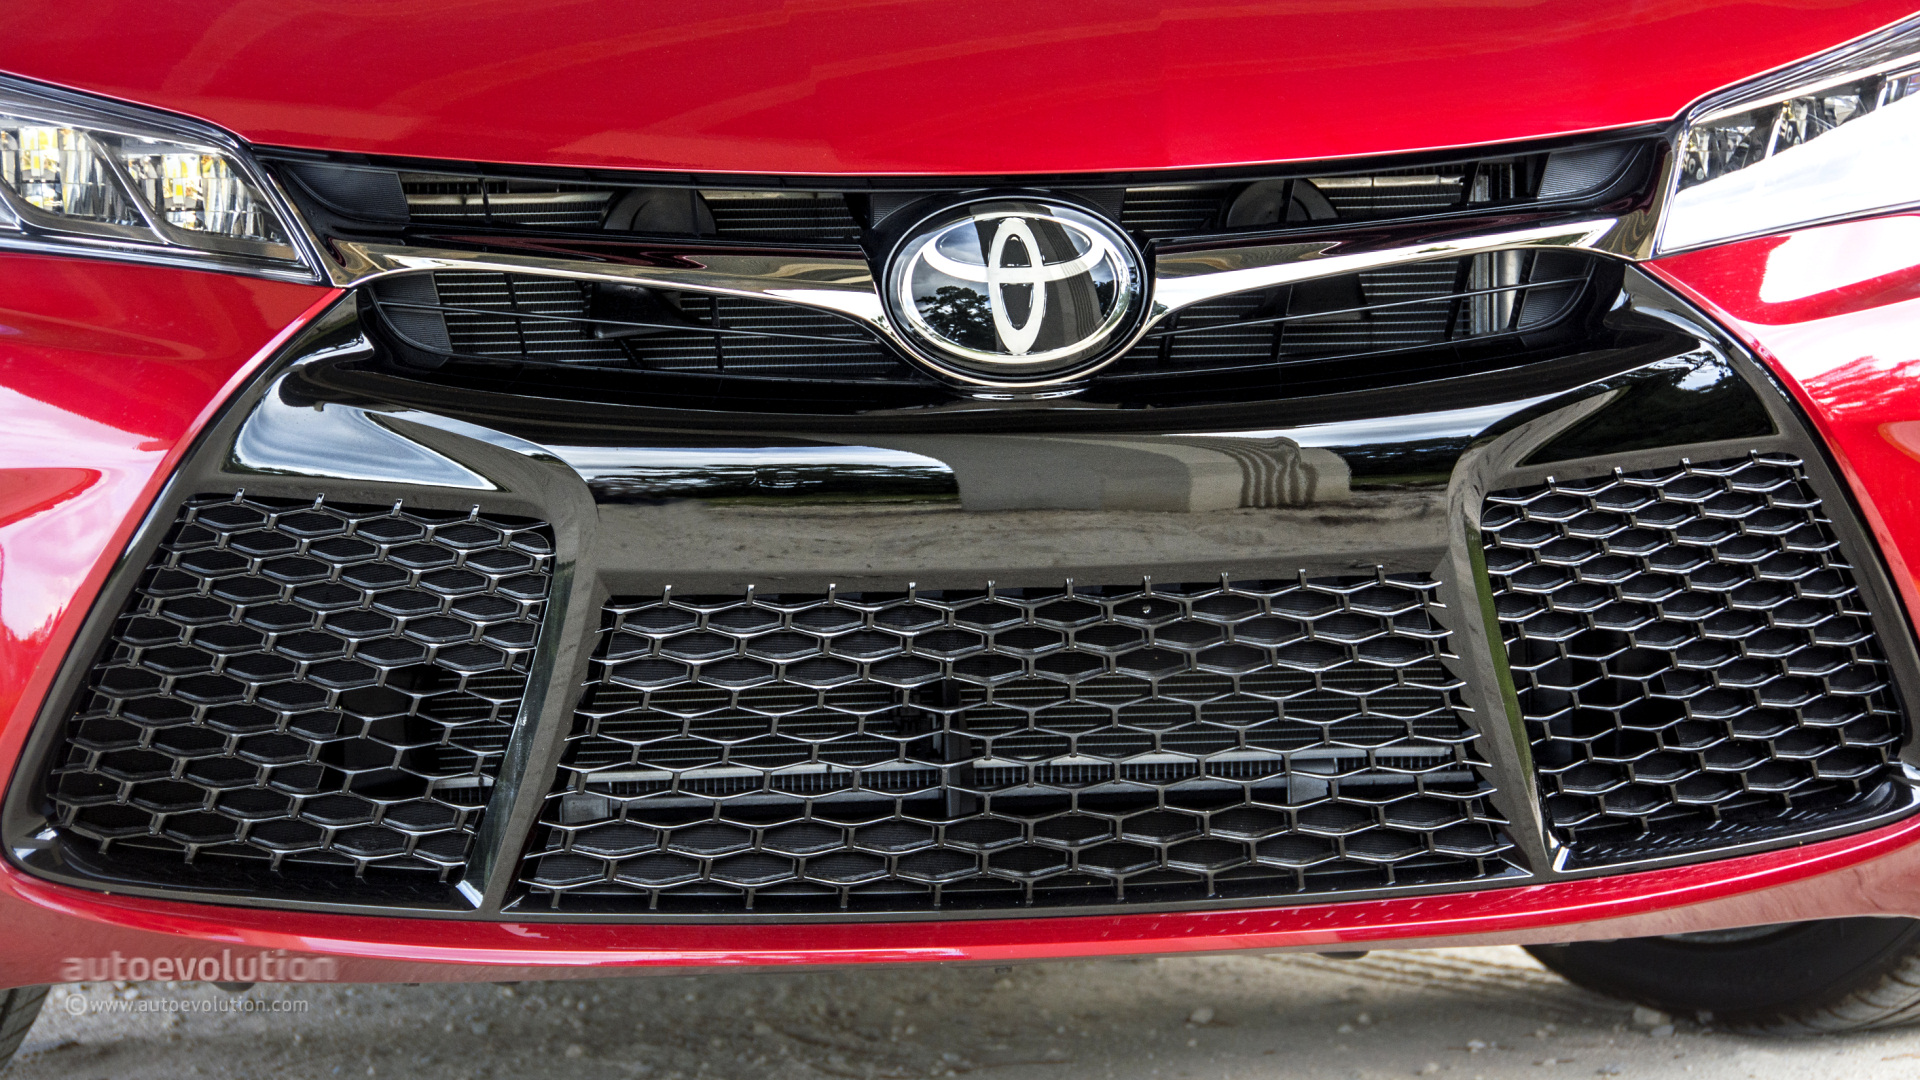 Toyota All Wheel Drive >> 2015 Toyota Camry Review - autoevolution